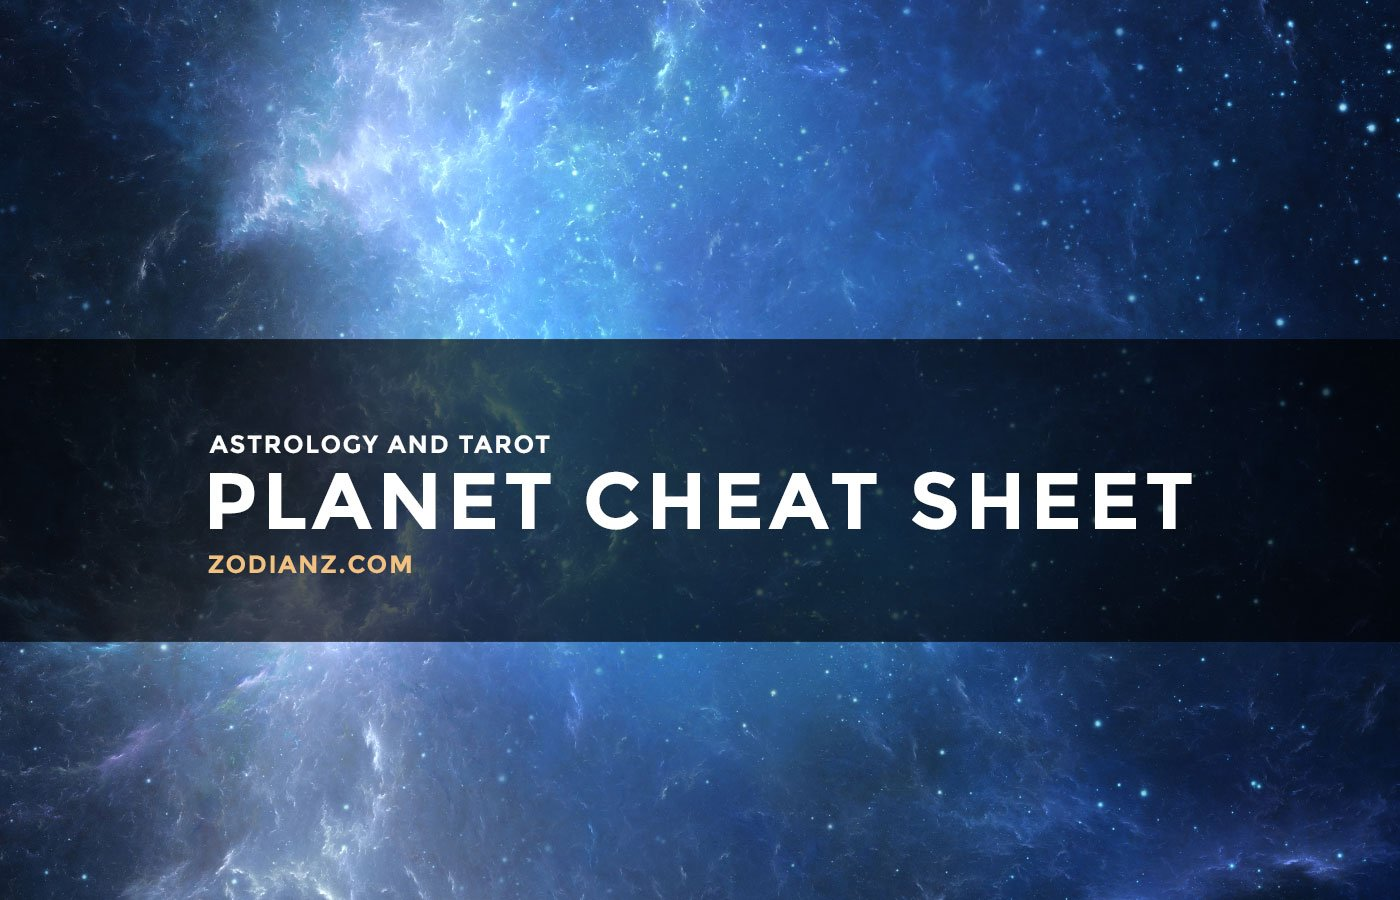 Astrology and Tarot Planet Cheat Sheet by Joan Zodianz